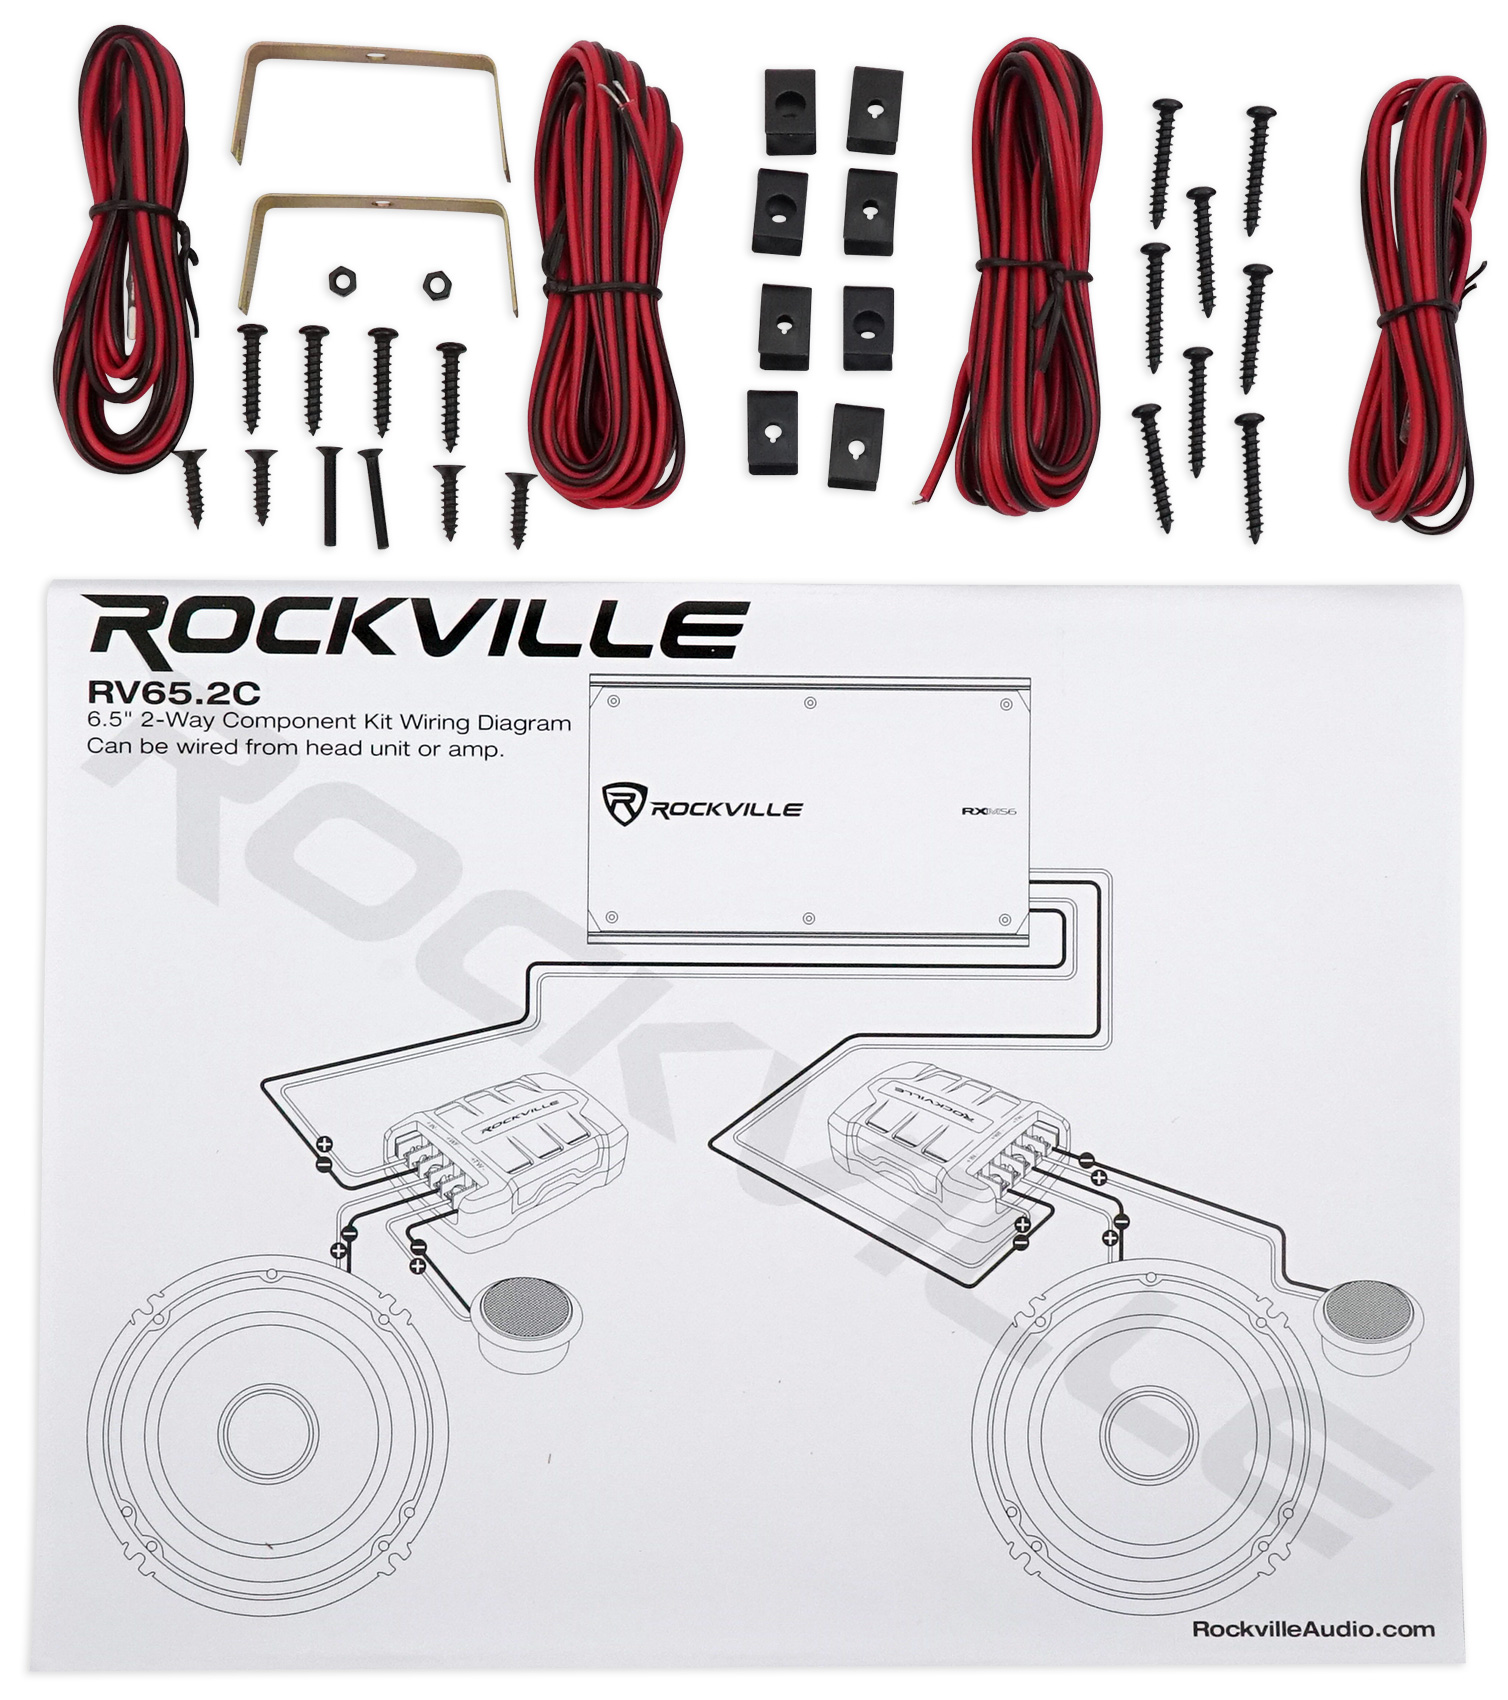 Pair Rockville Rv65 2c 6 5 Component Car Speakers 750 Watts 140w Rms Cea Rated Car Audio Vehicle Electronics Gps